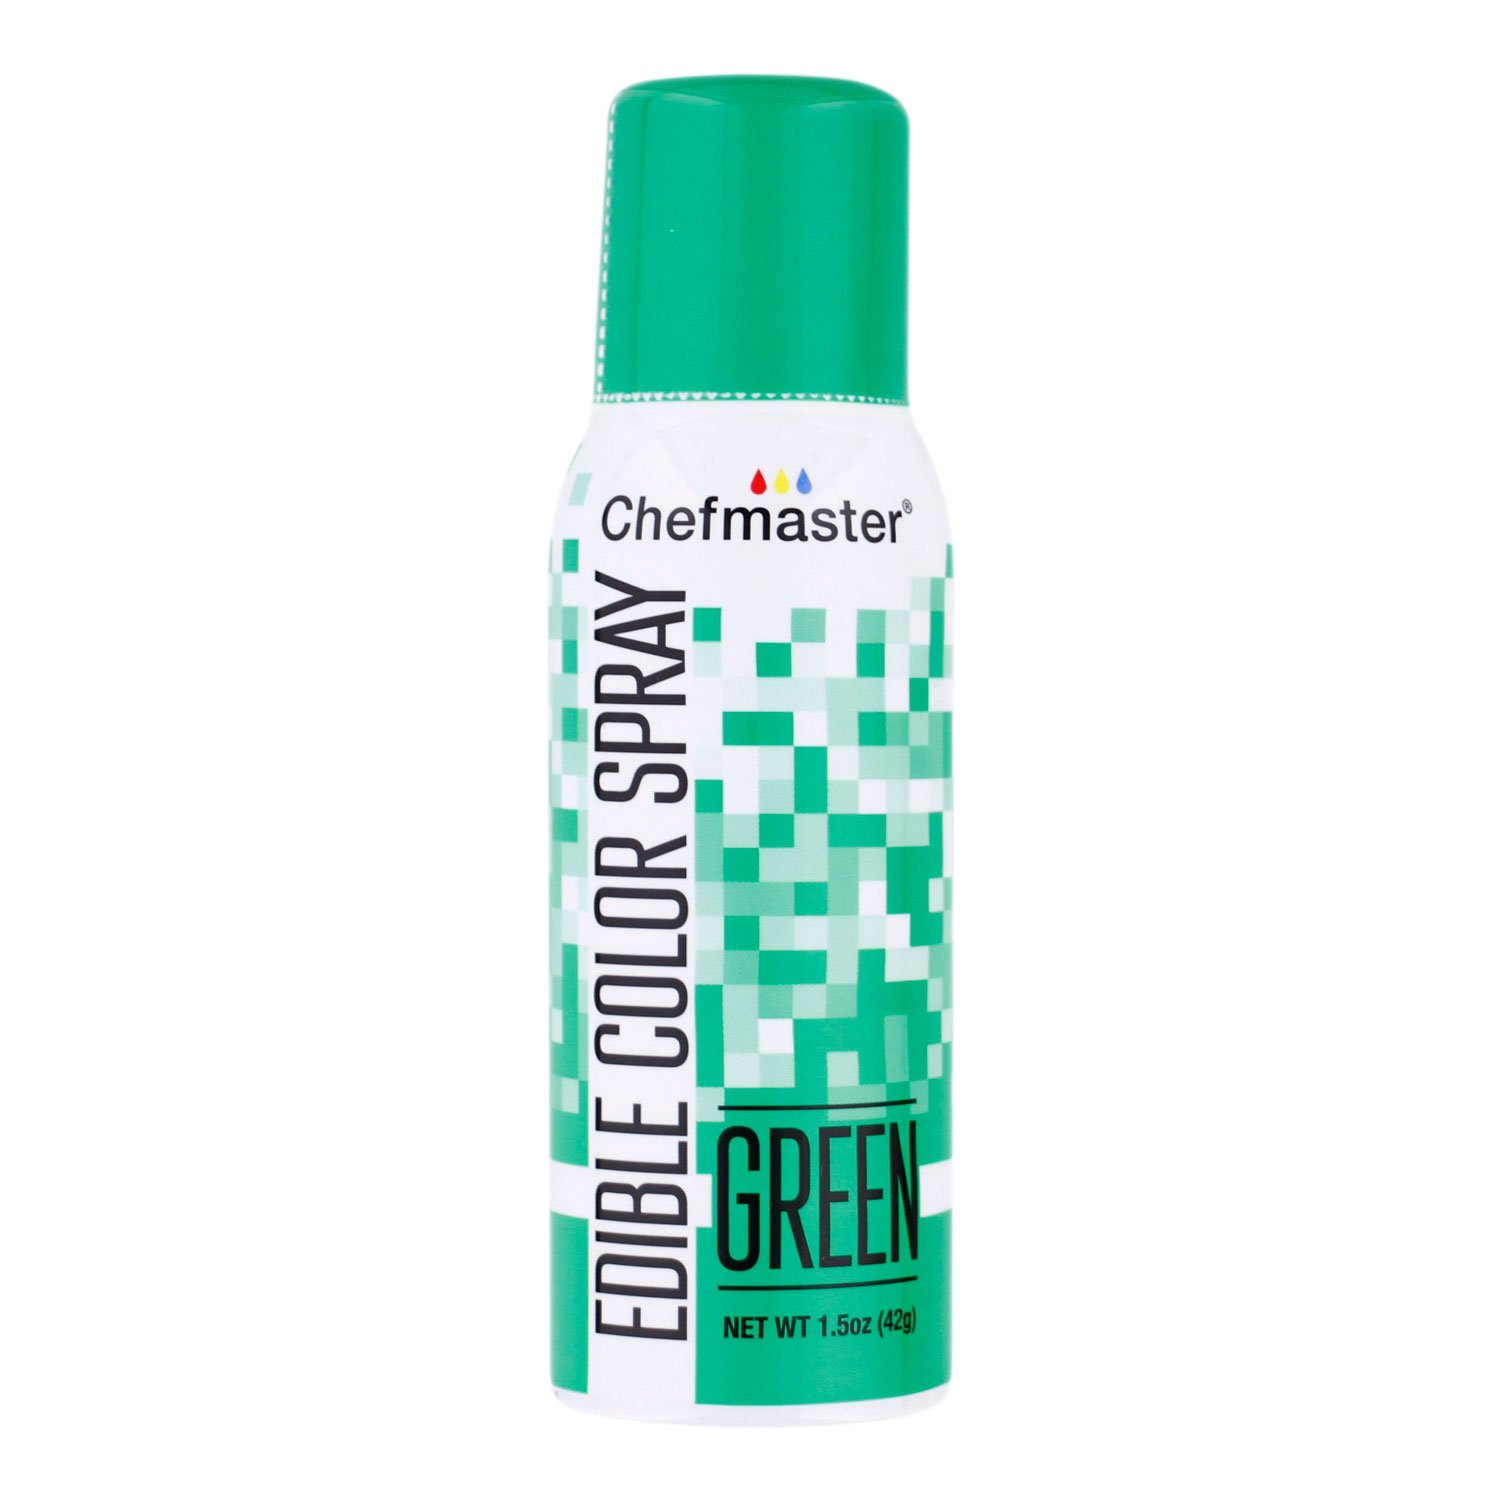 Chefmaster Green Edible Spray Paint 1.5 Ounces by Chefmaster